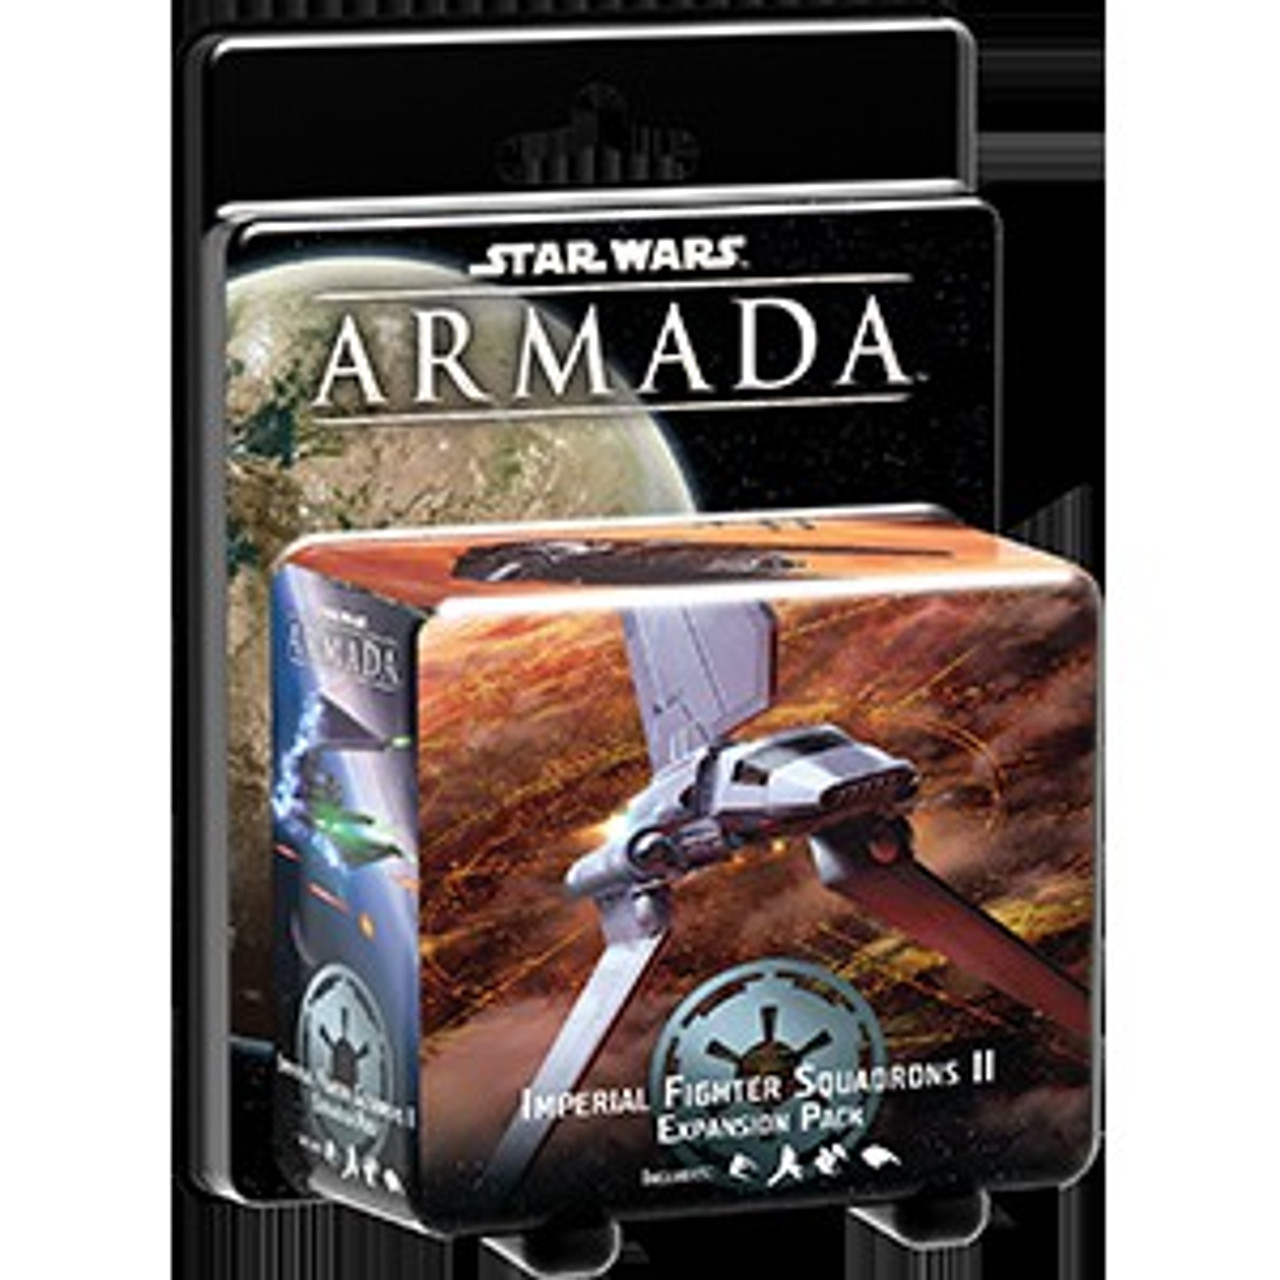 Star Wars Star Wars Armada Imperial Fighter Squadrons Ii Expansion